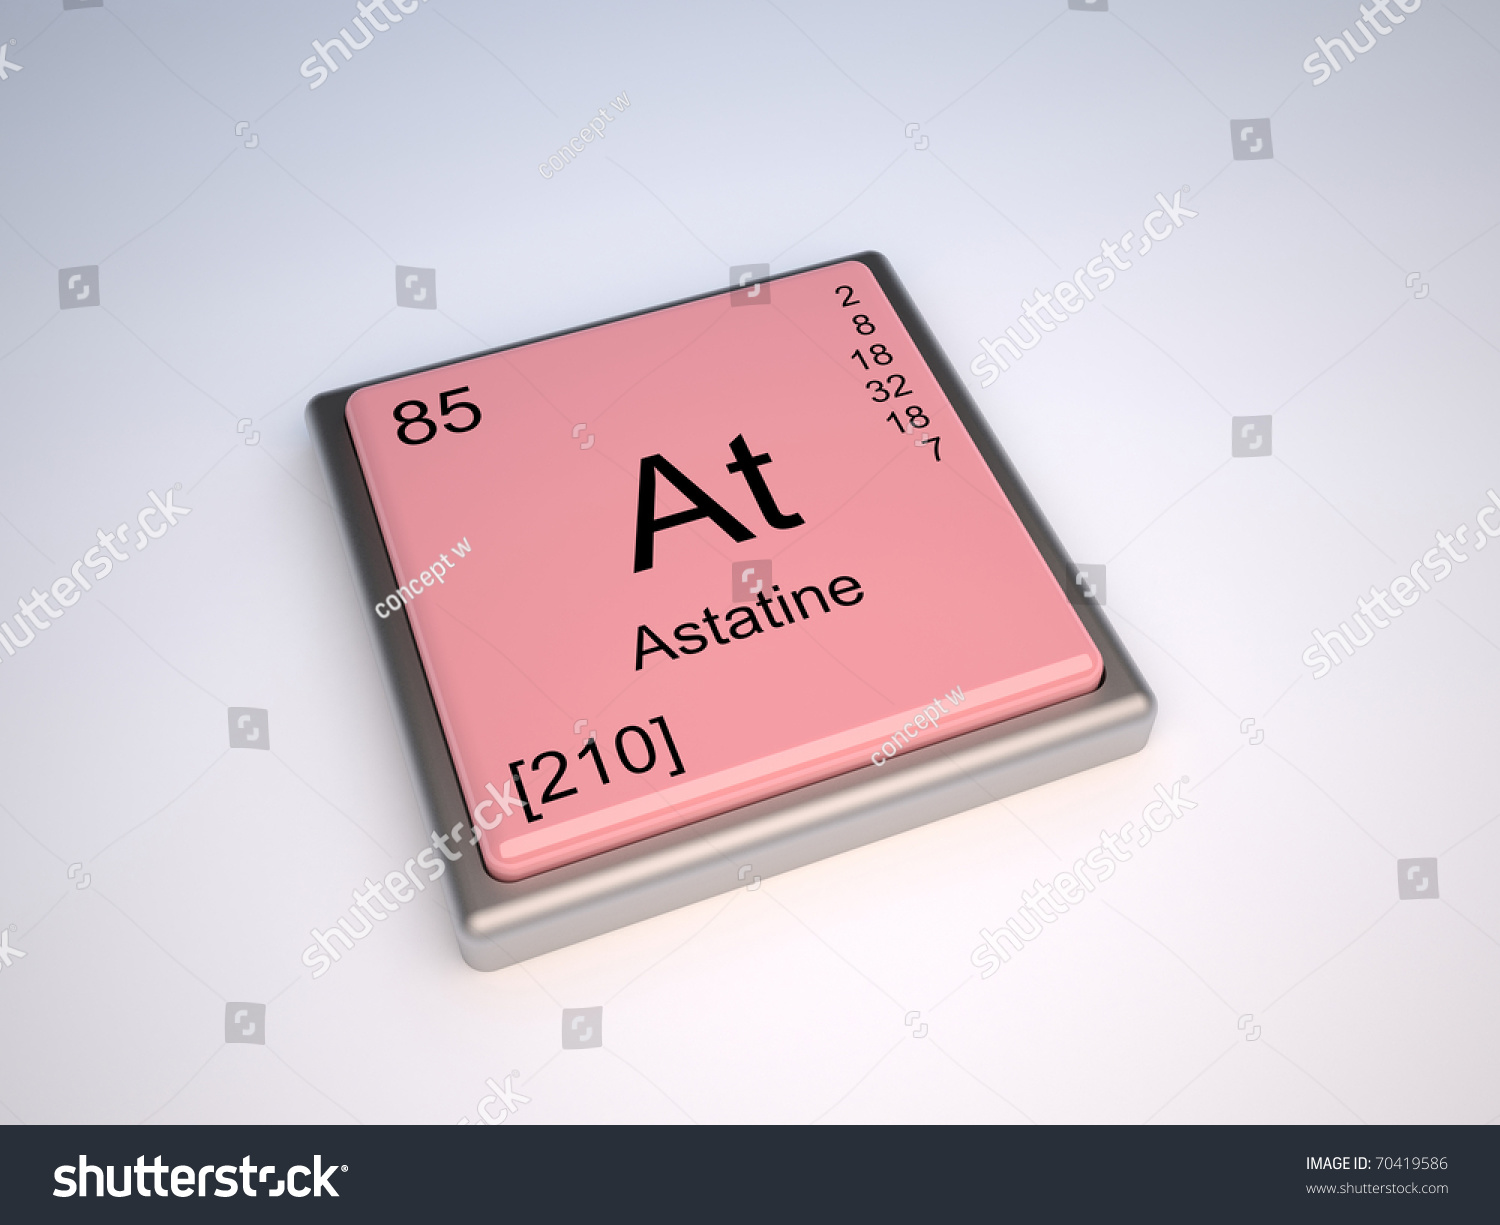 Astatine chemical element periodic table symbol stock illustration astatine chemical element of the periodic table with symbol at iupac gamestrikefo Image collections